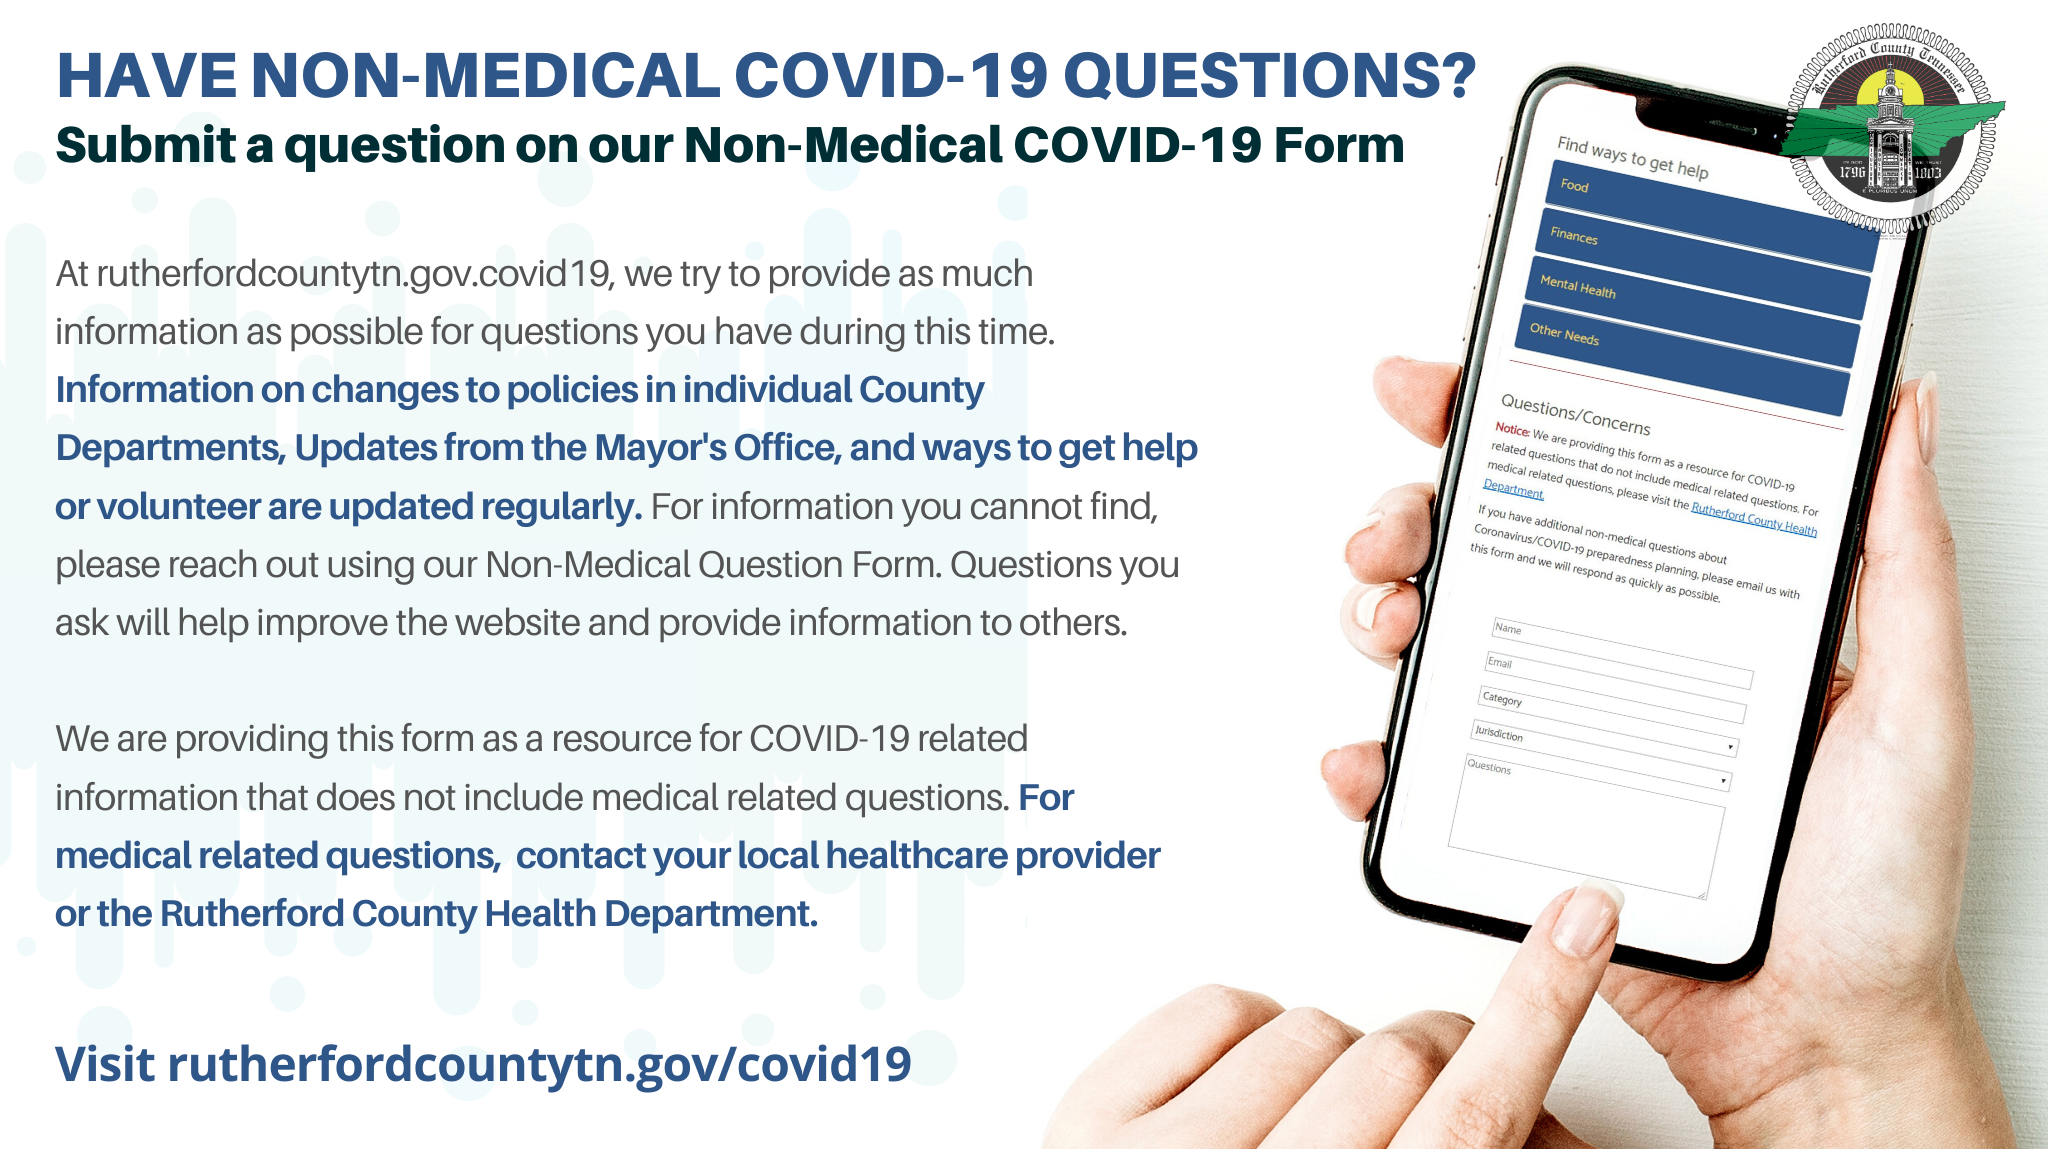 Rutherford County Government Creates Online Form to Submit COVID-19 Concerns/Questions